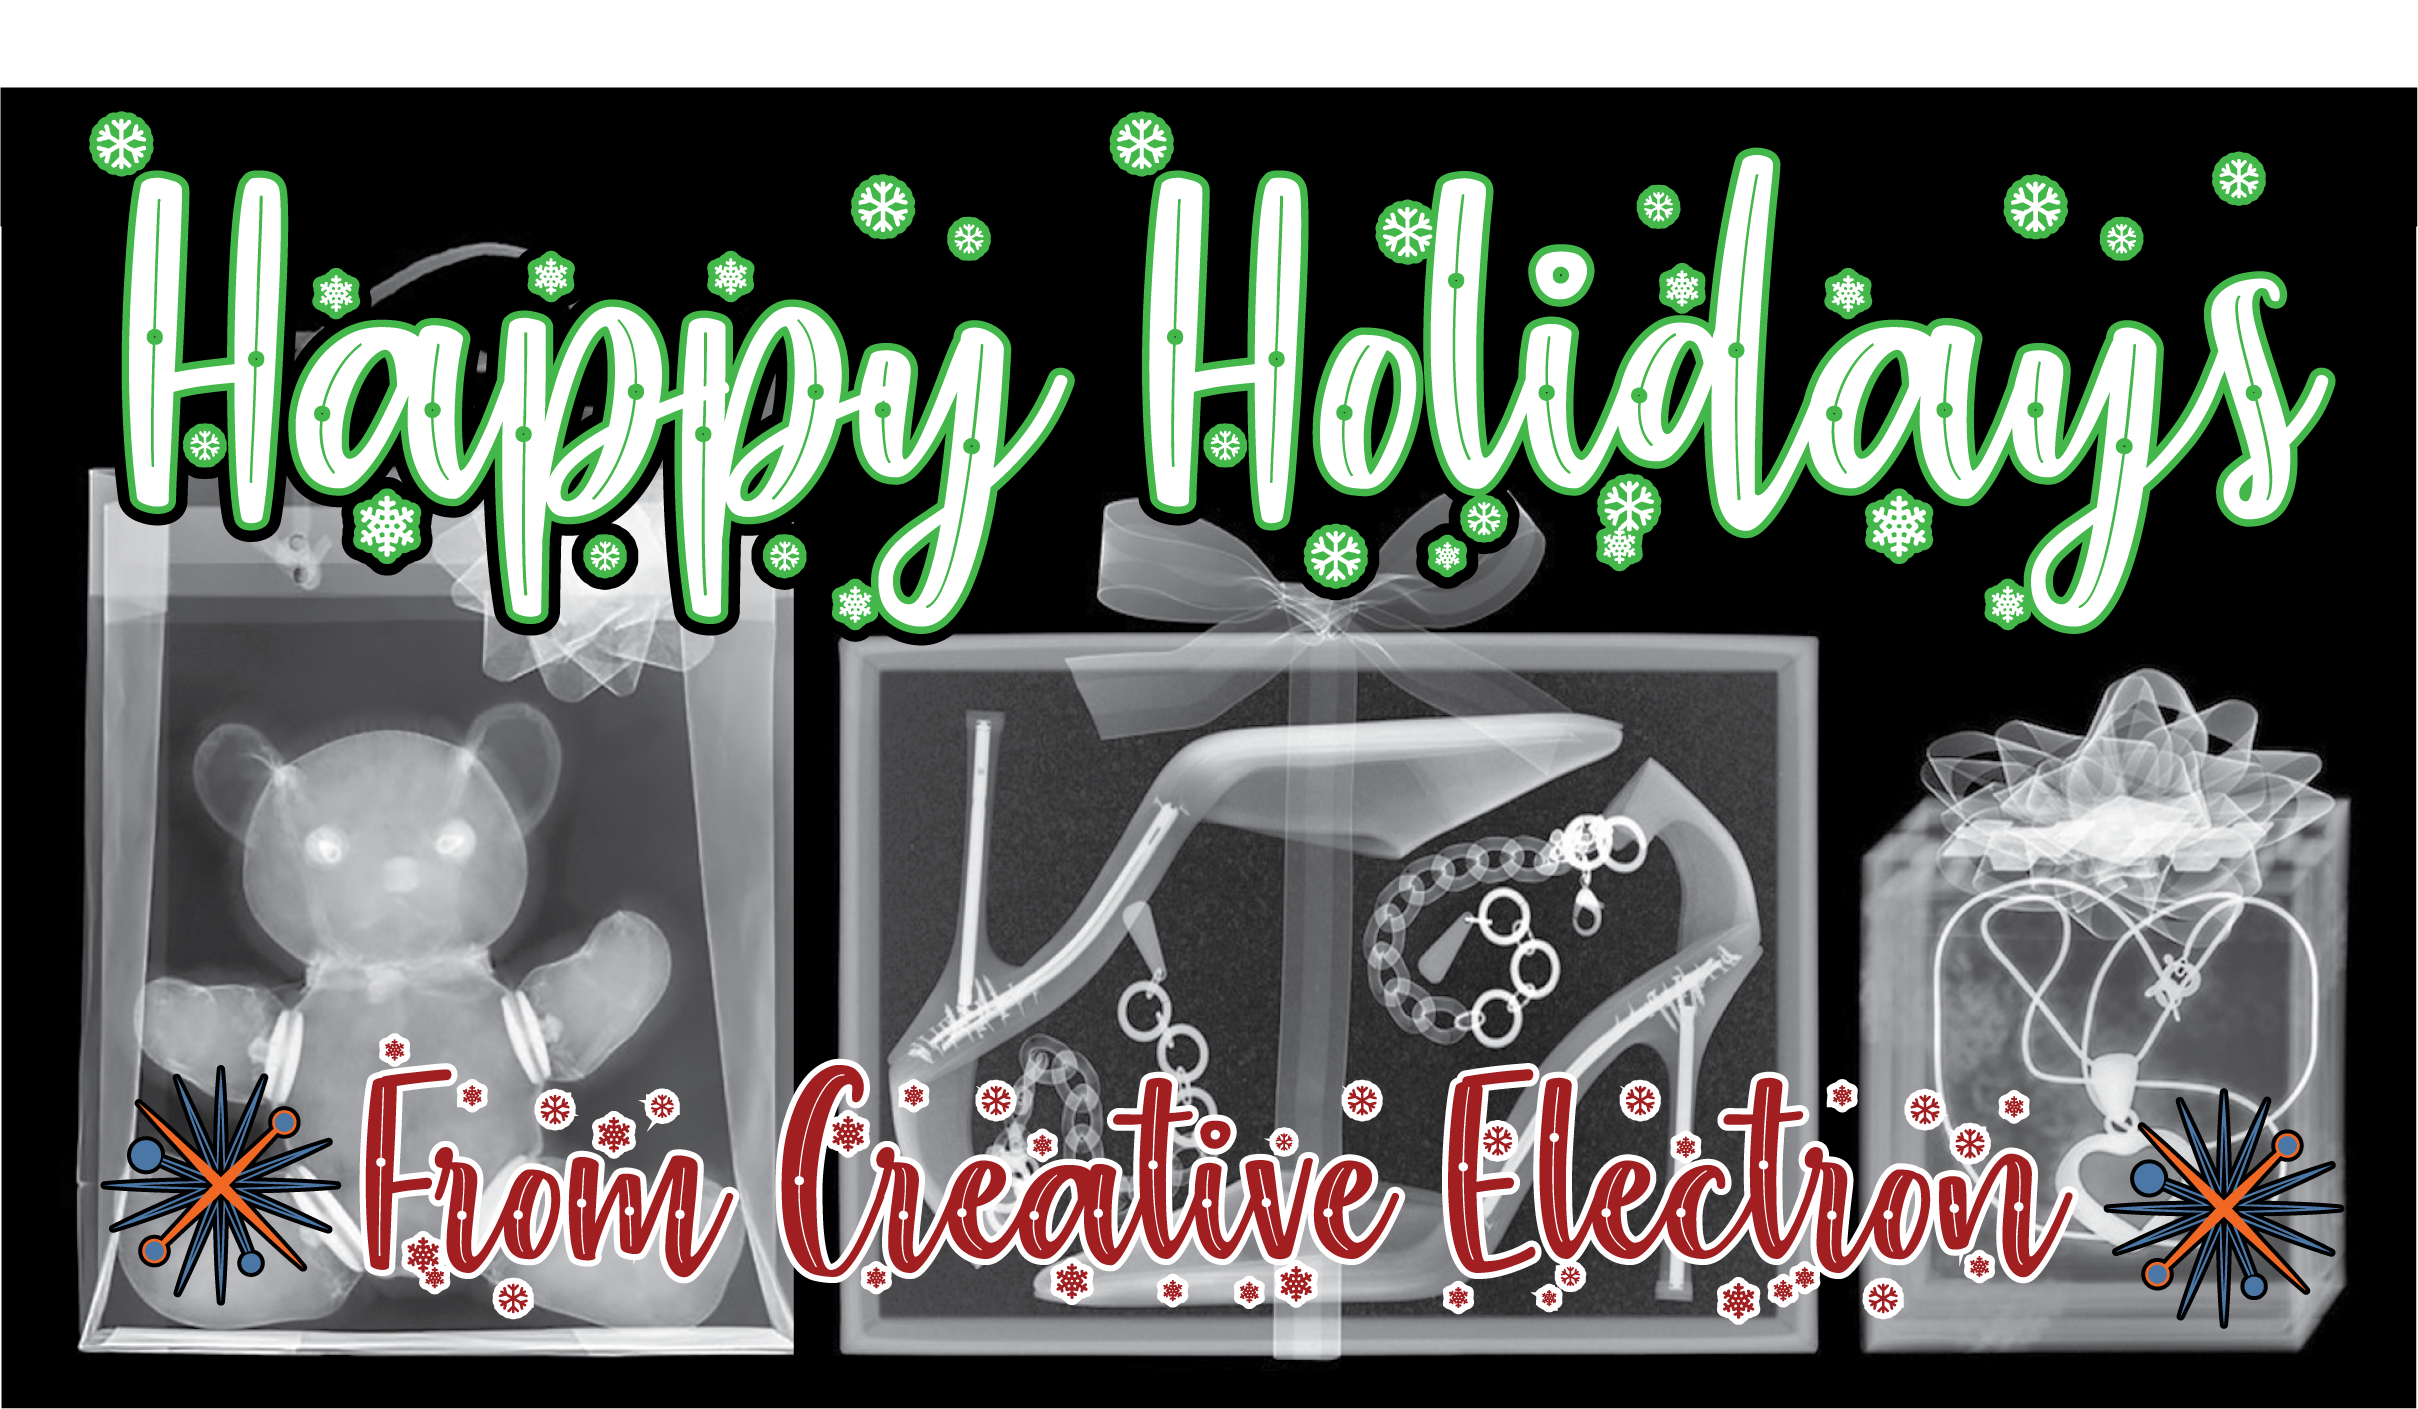 Happy Holidays from Creative Electron